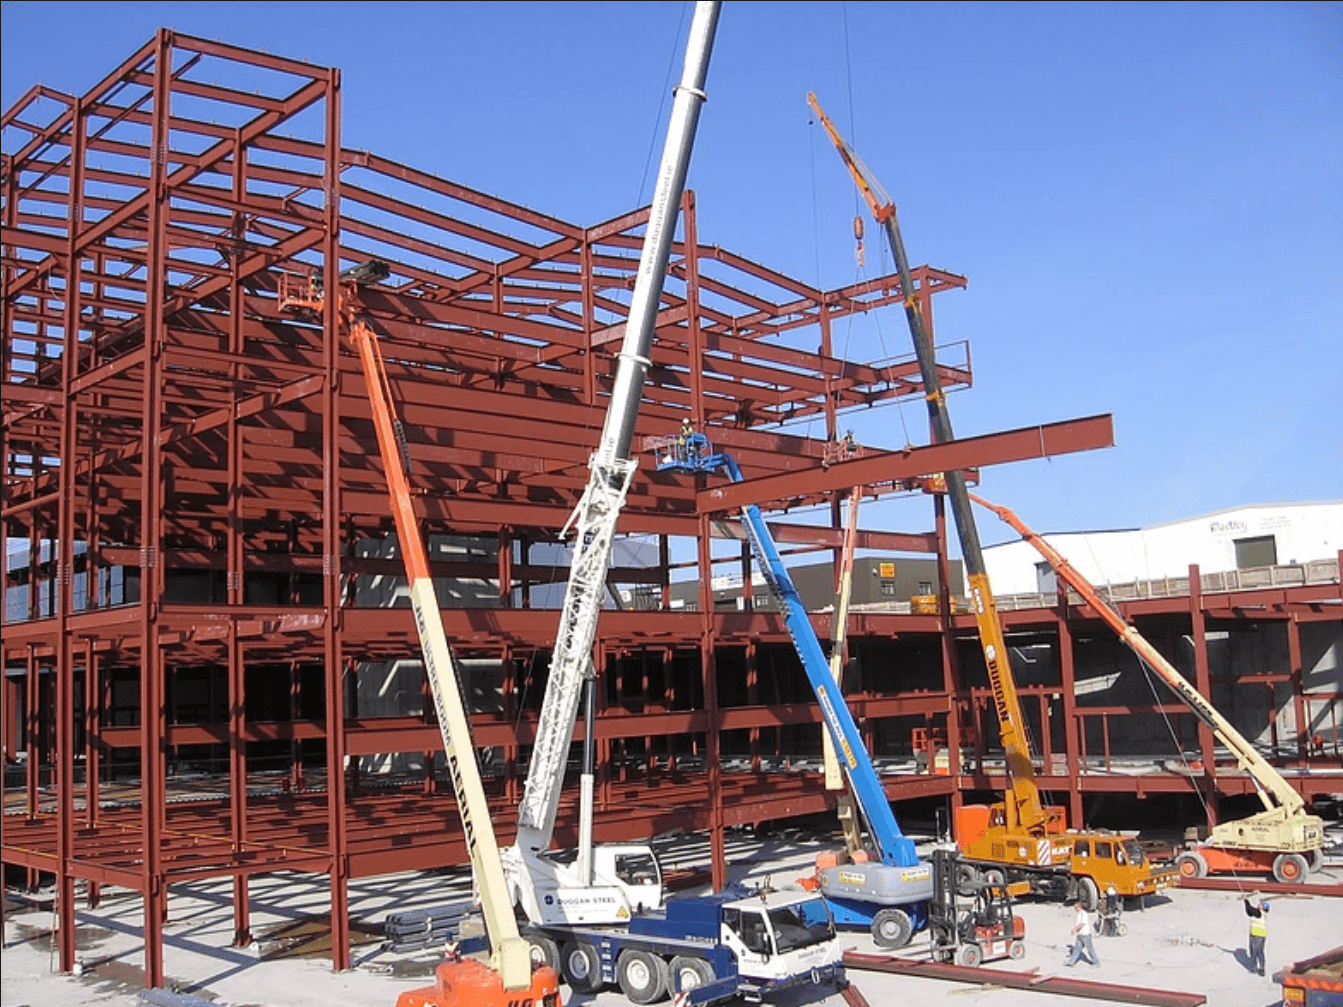 Steel Erection Best Practices For Cranes and Equipment